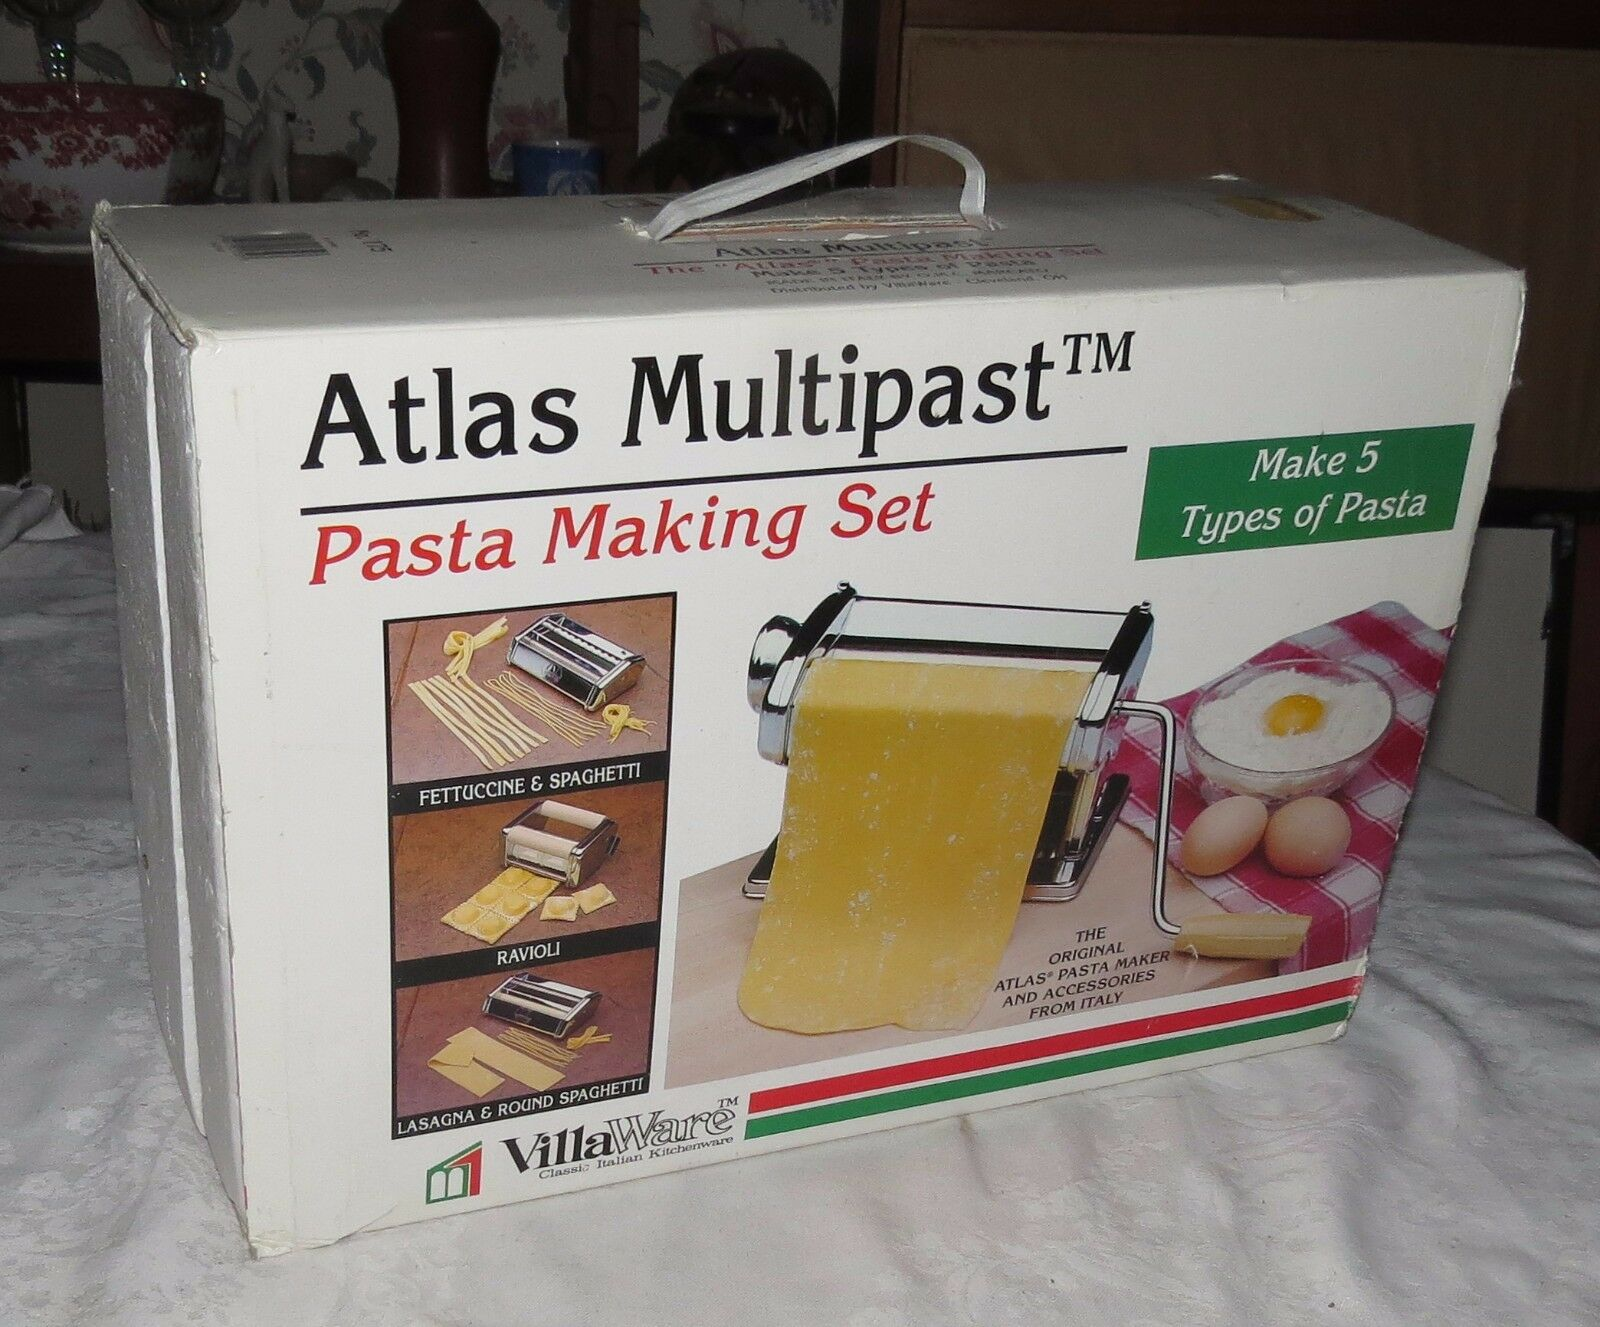 Atlas Multipast VillaWare pates making set fait cinq types de pates NEW IN BOX